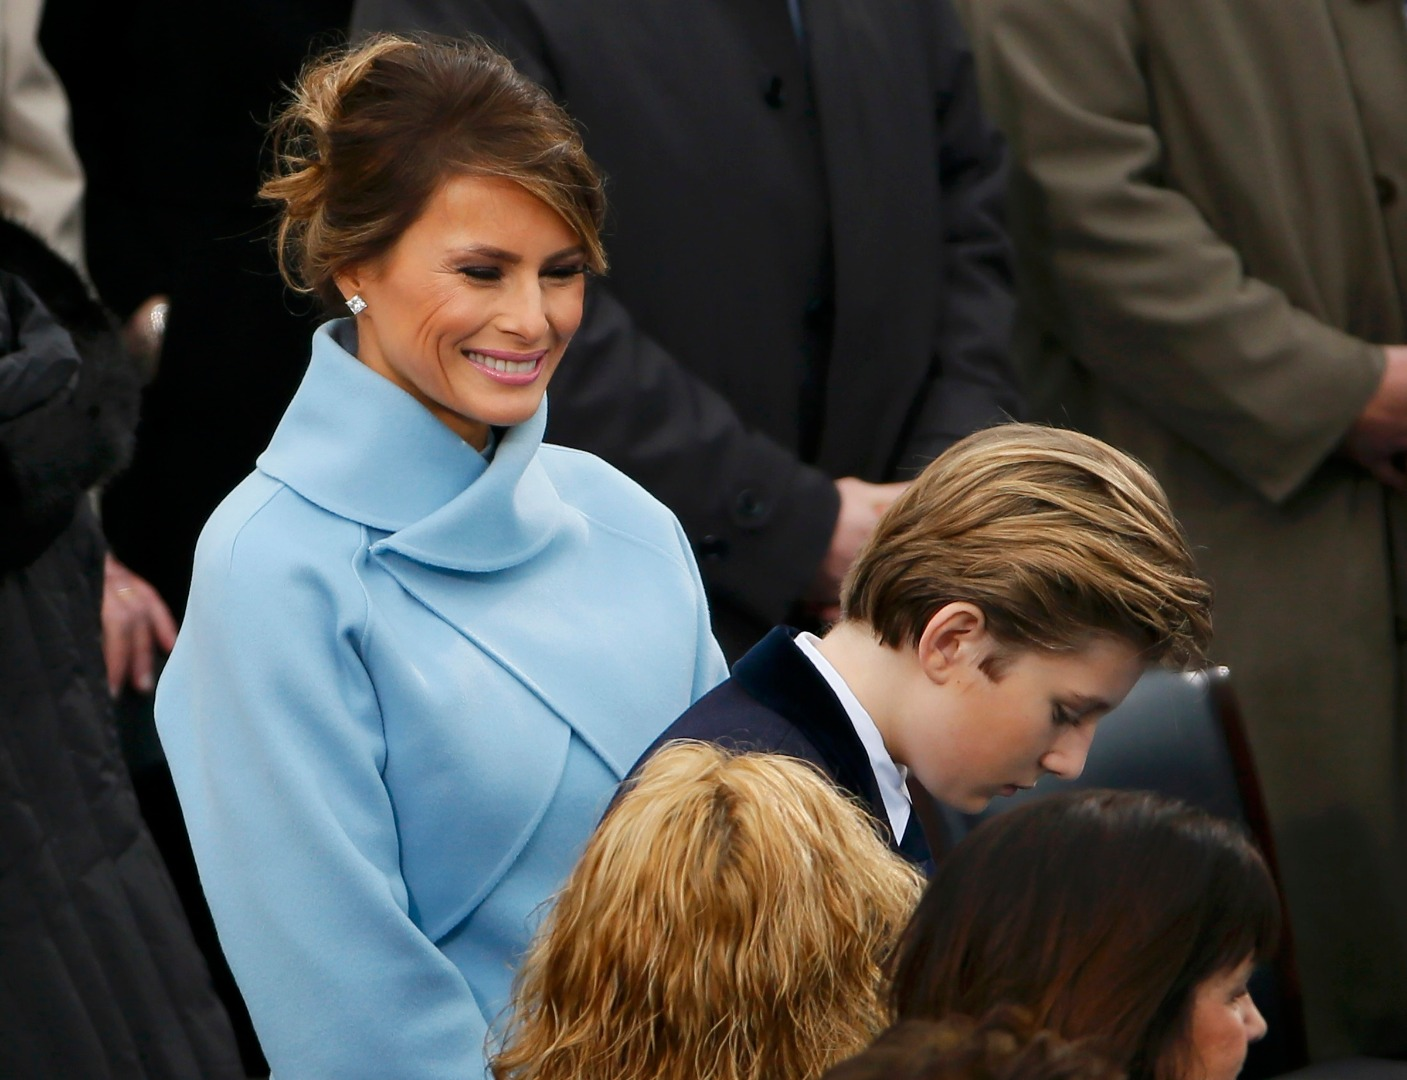 First lady Melania Trump looks at her son Barron after her husband Donald J Trump was sworn-in on the West front of the U.S. Capitol in Washington